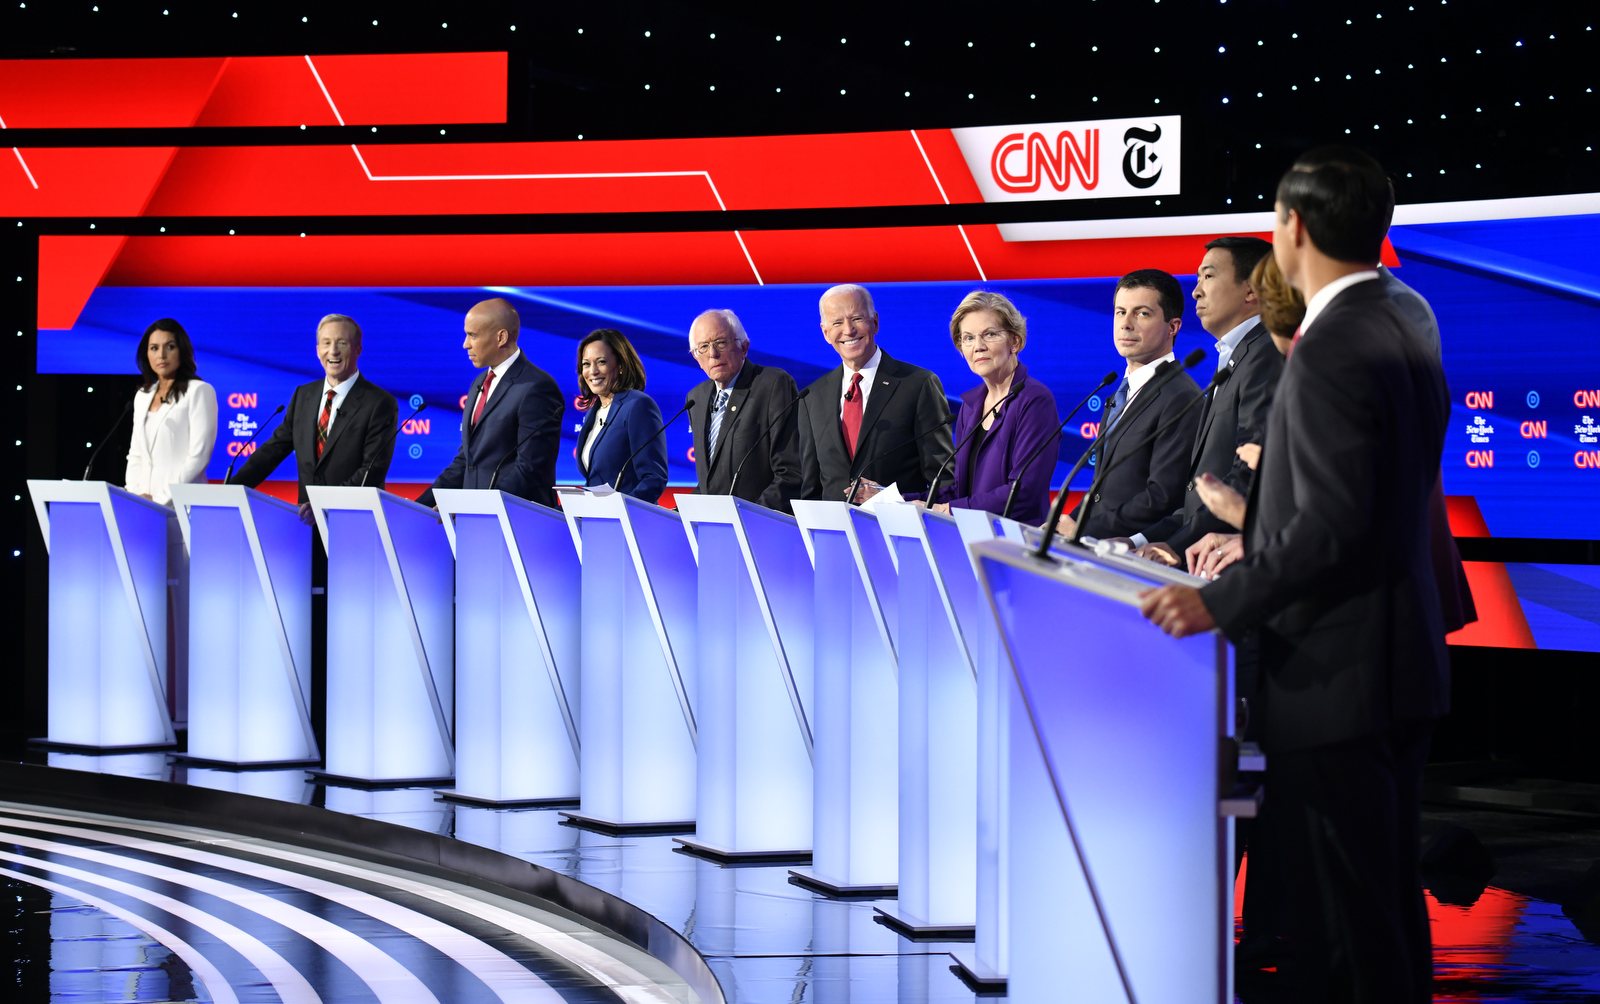 ncs_CNN-Dem-Debate-Ohio_025